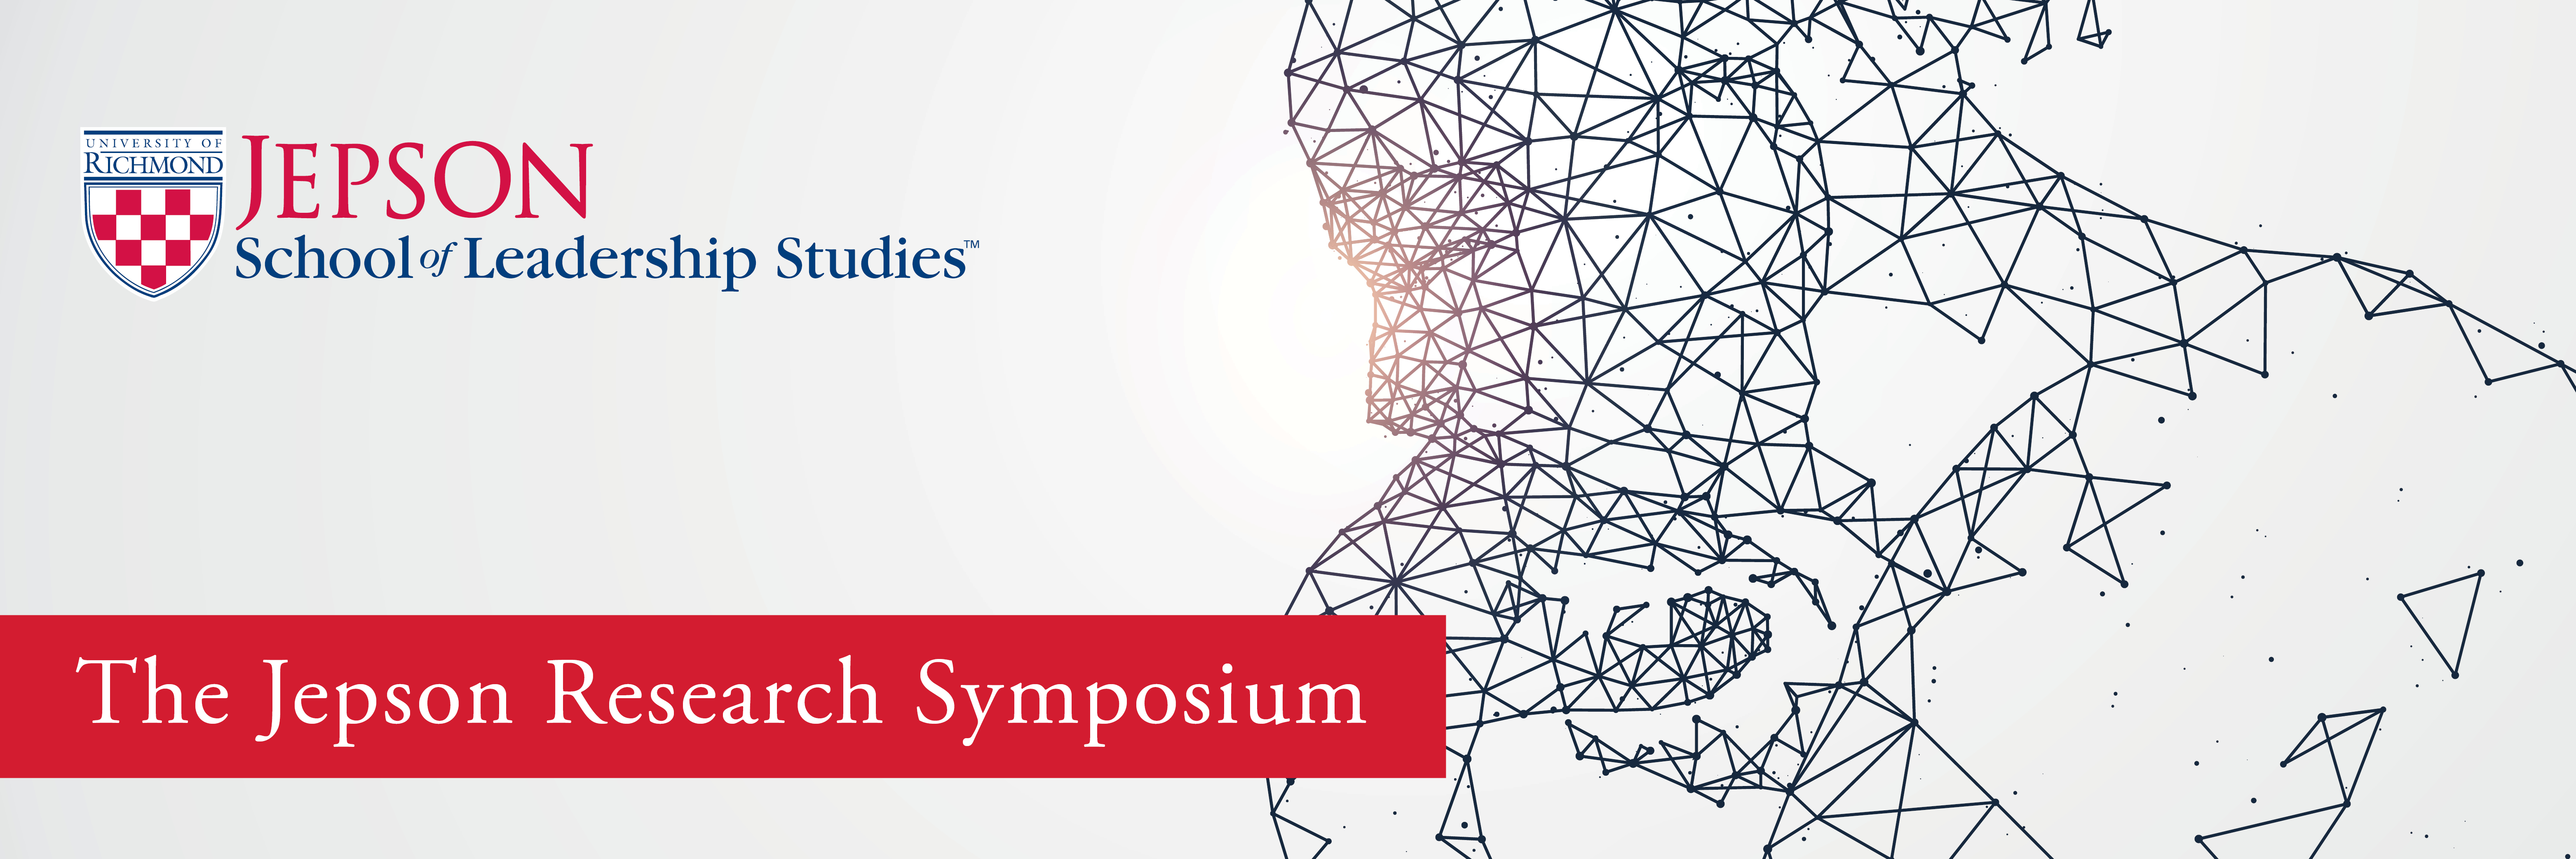 Jepson School of Leadership Studies Research Symposium